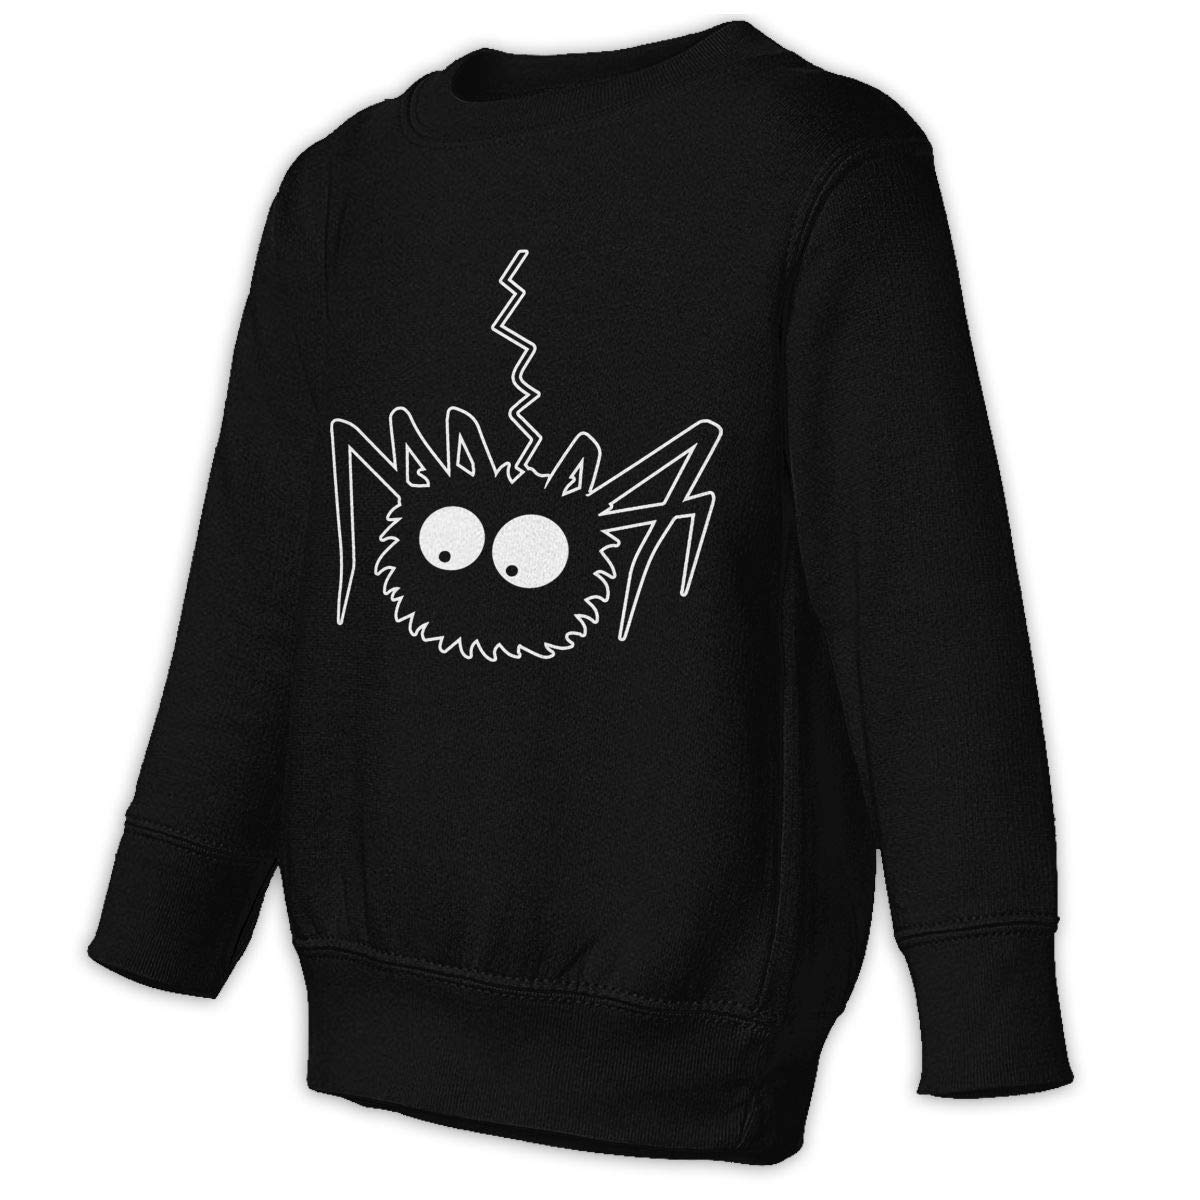 NMDJC CCQ Cute Spider Baby Sweatshirt Adorable Toddler Hoodies Soft Outfits